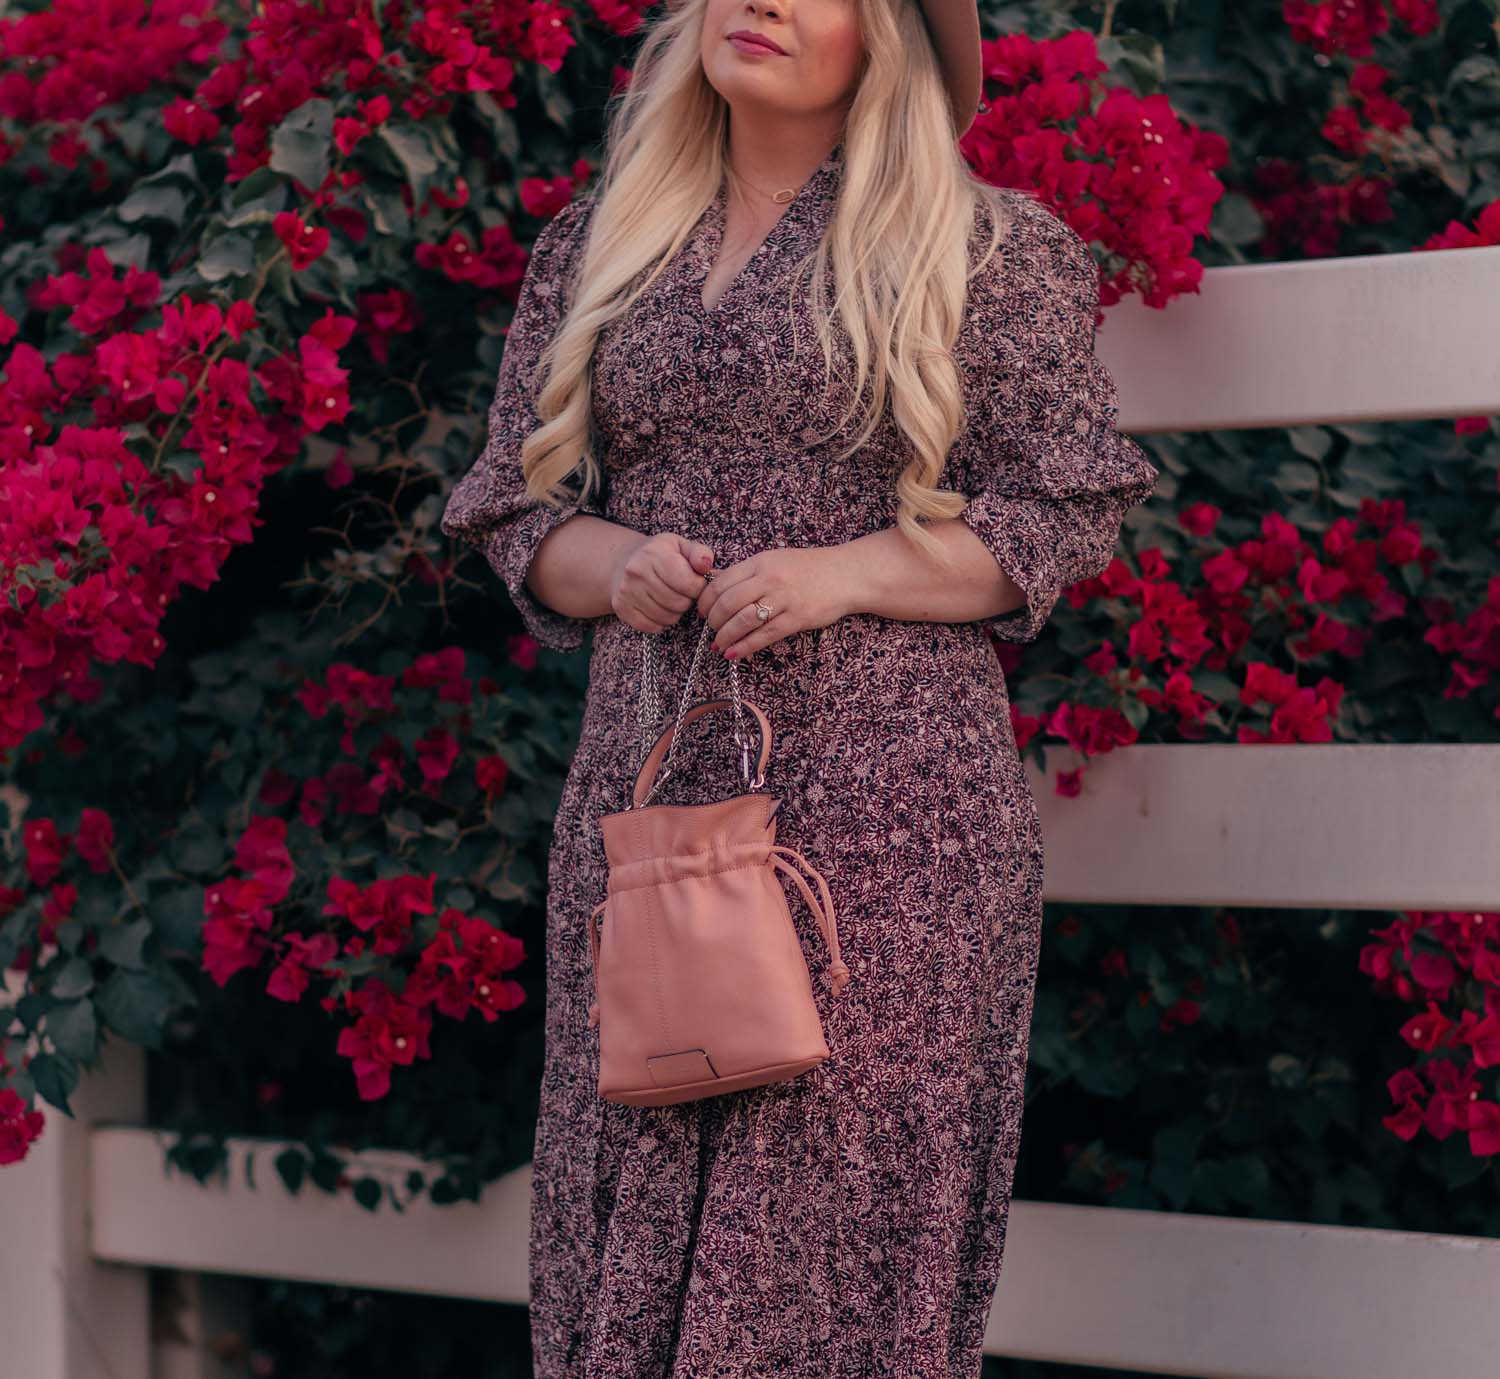 Fashion blogger Elizabeth Hugen of Lizzie in Lace share a Fall Prairie Dress Outfit Idea including a BASH dress and Radley London handbag